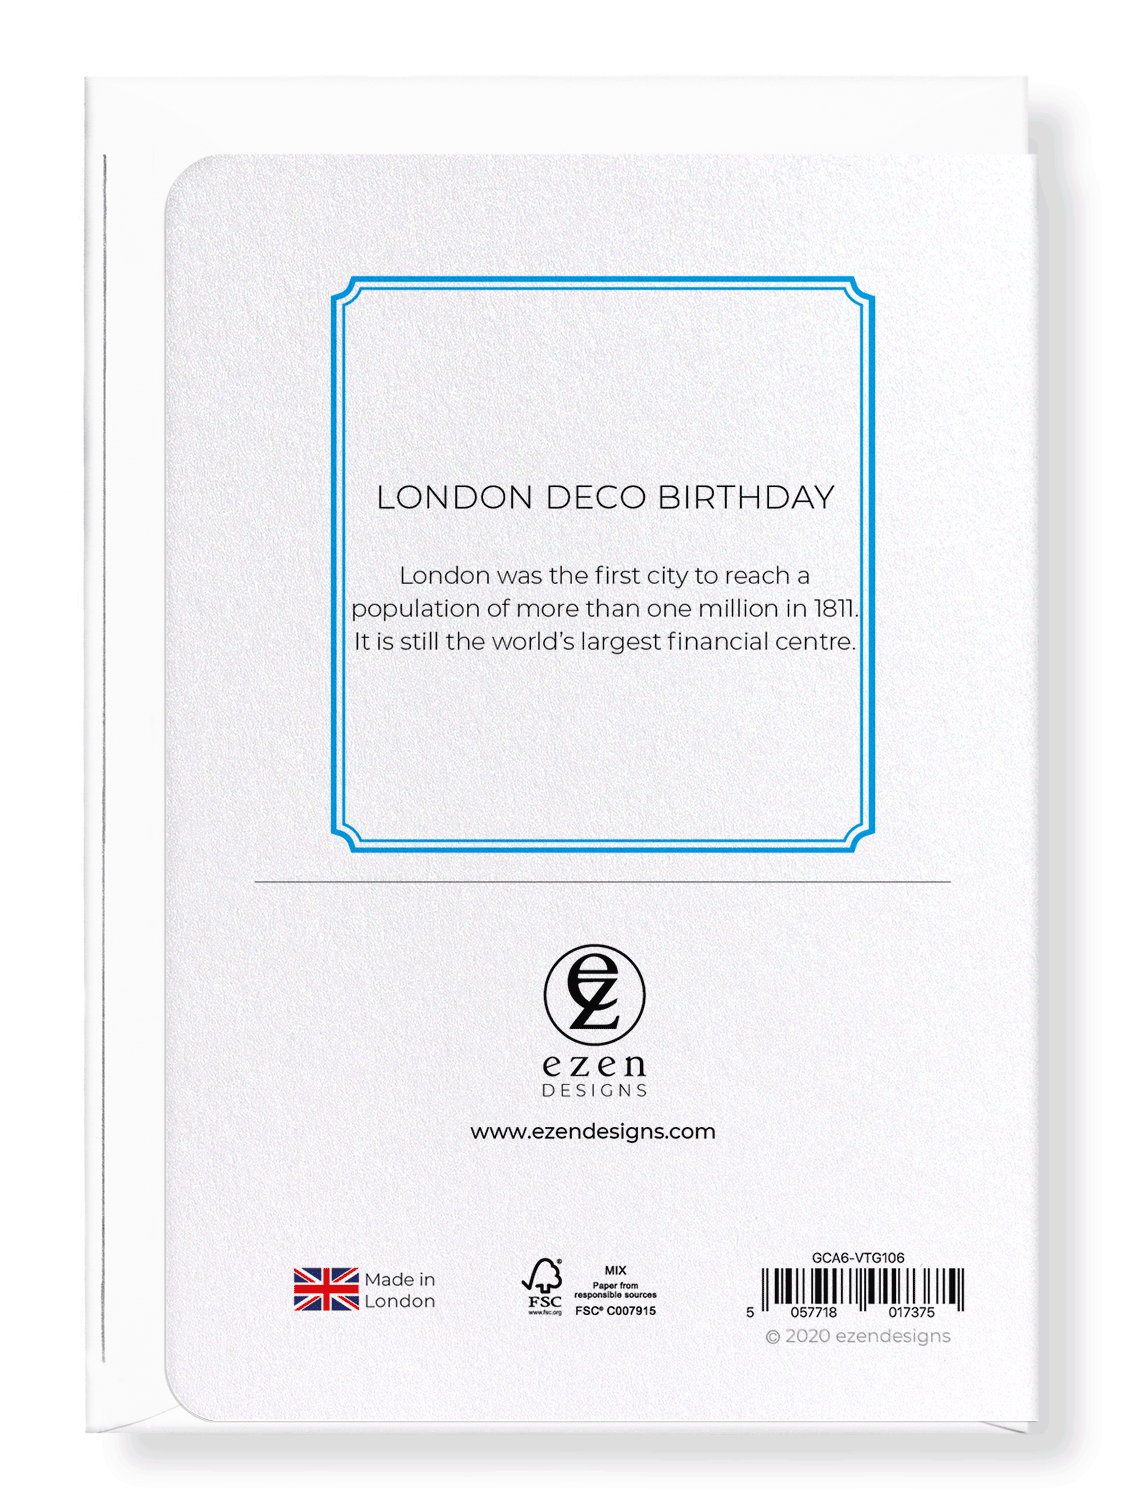 Ezen Designs - London deco birthday - Greeting Card - Back